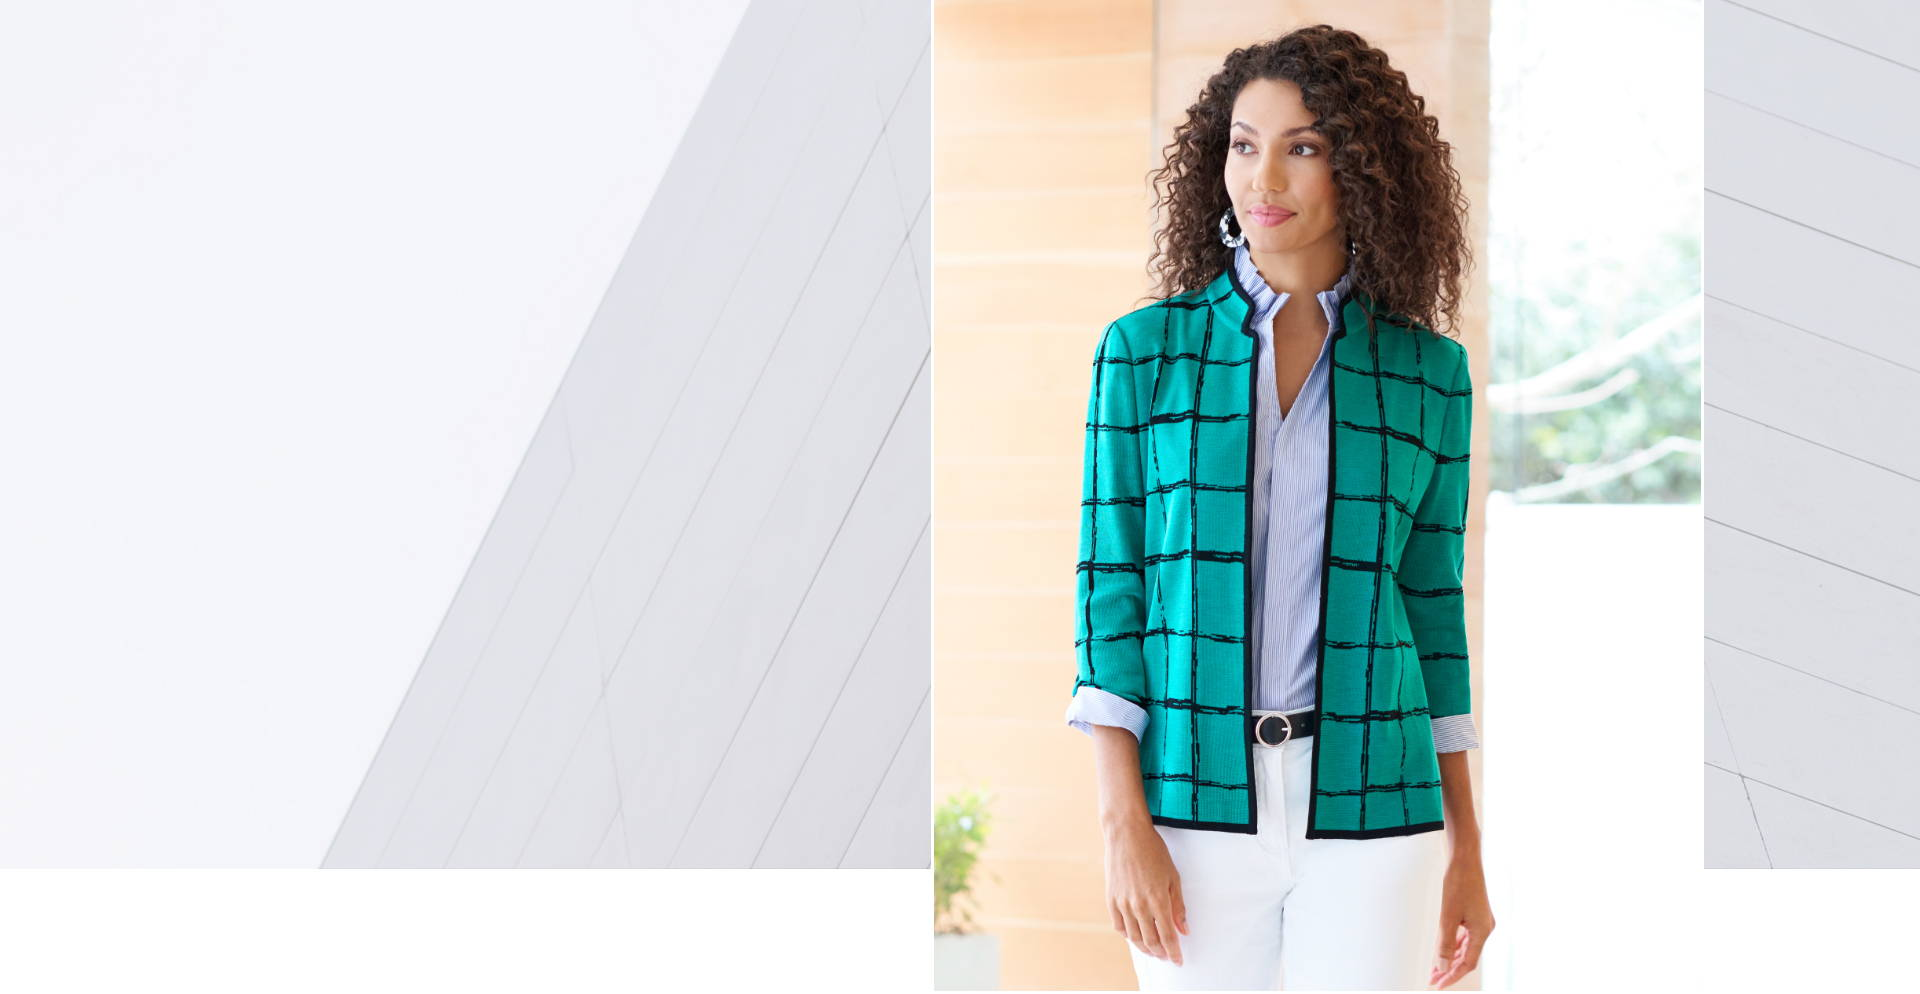 Ming's Style Secrets - Featuring the Abstract Check Knit Jacket